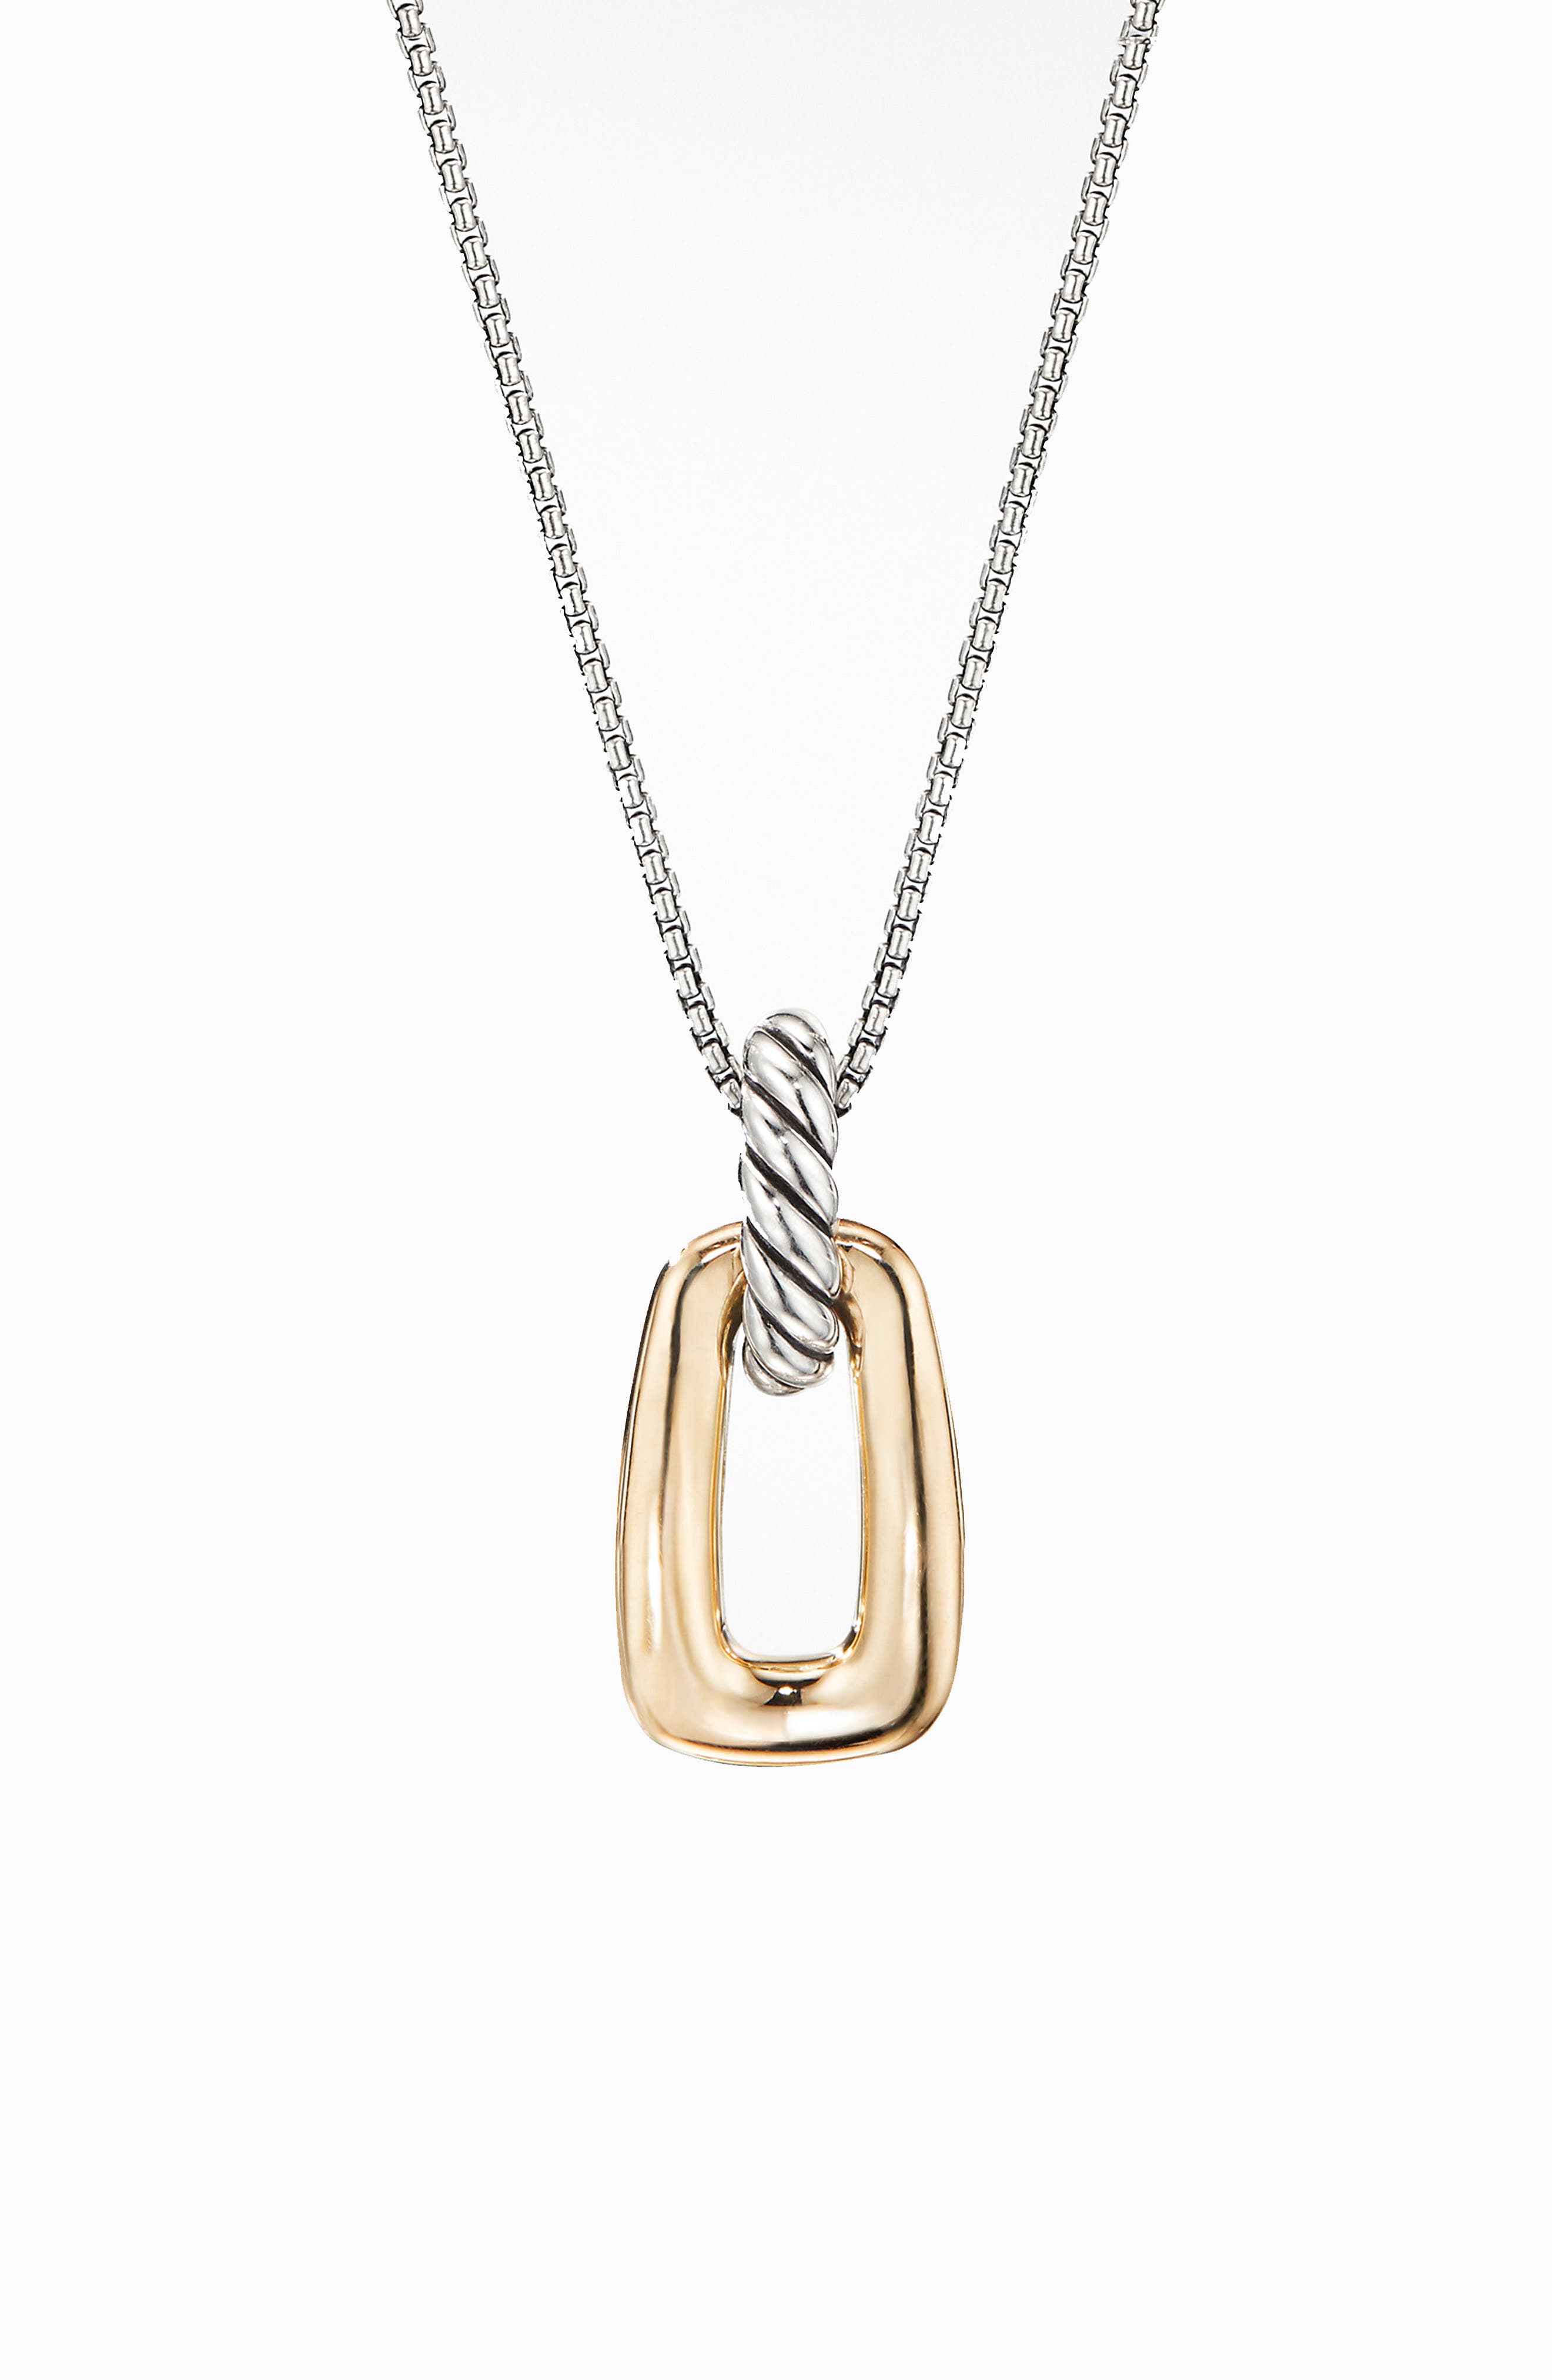 Wellesley Link Pendant Necklace with 18K Gold,                         Main,                         color, 18K YELLOW GOLD/ SILVER